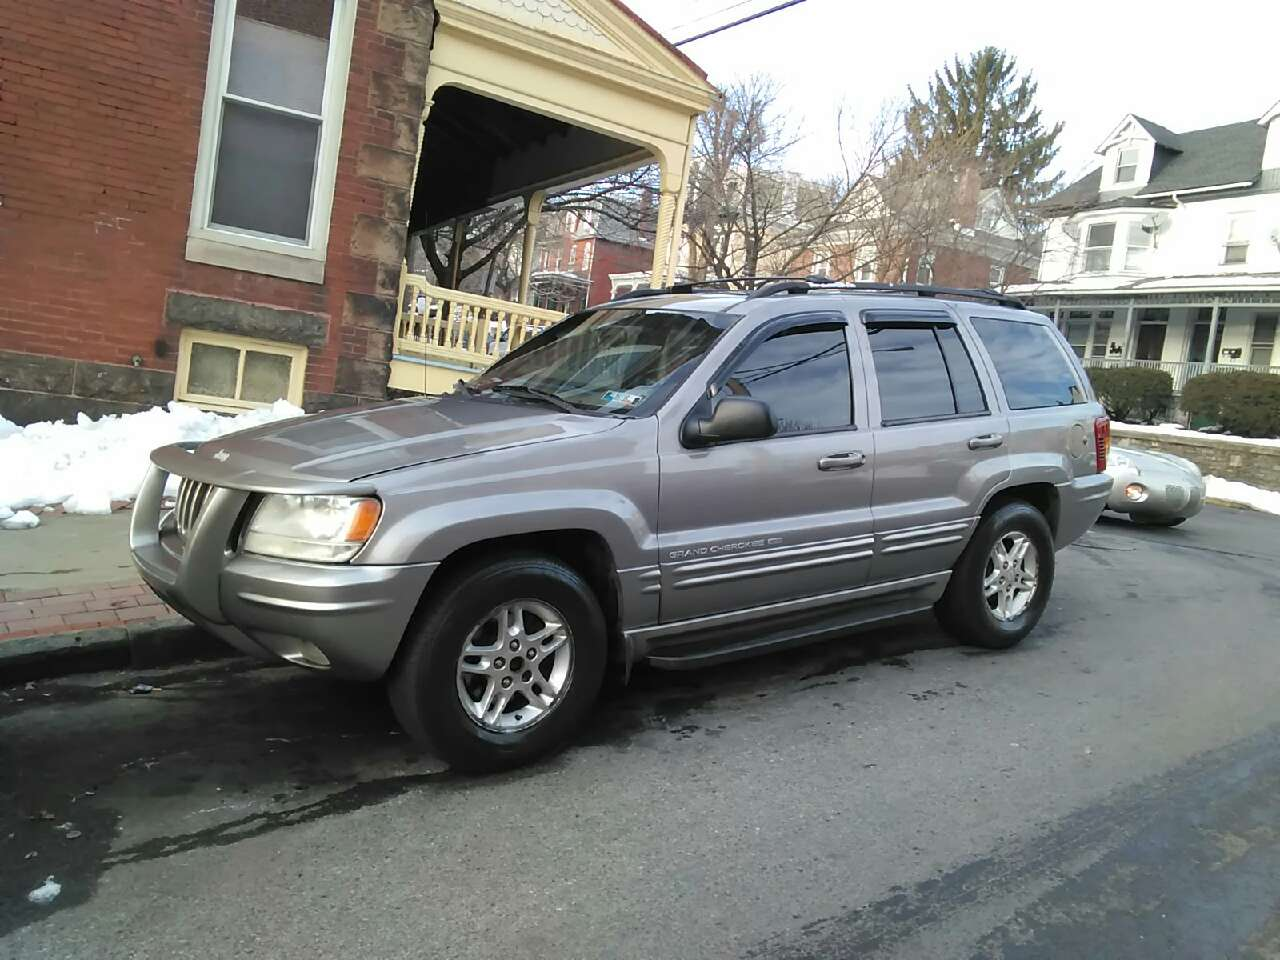 letgo 99 jeep grand cherokee limited in west reading pa. Black Bedroom Furniture Sets. Home Design Ideas